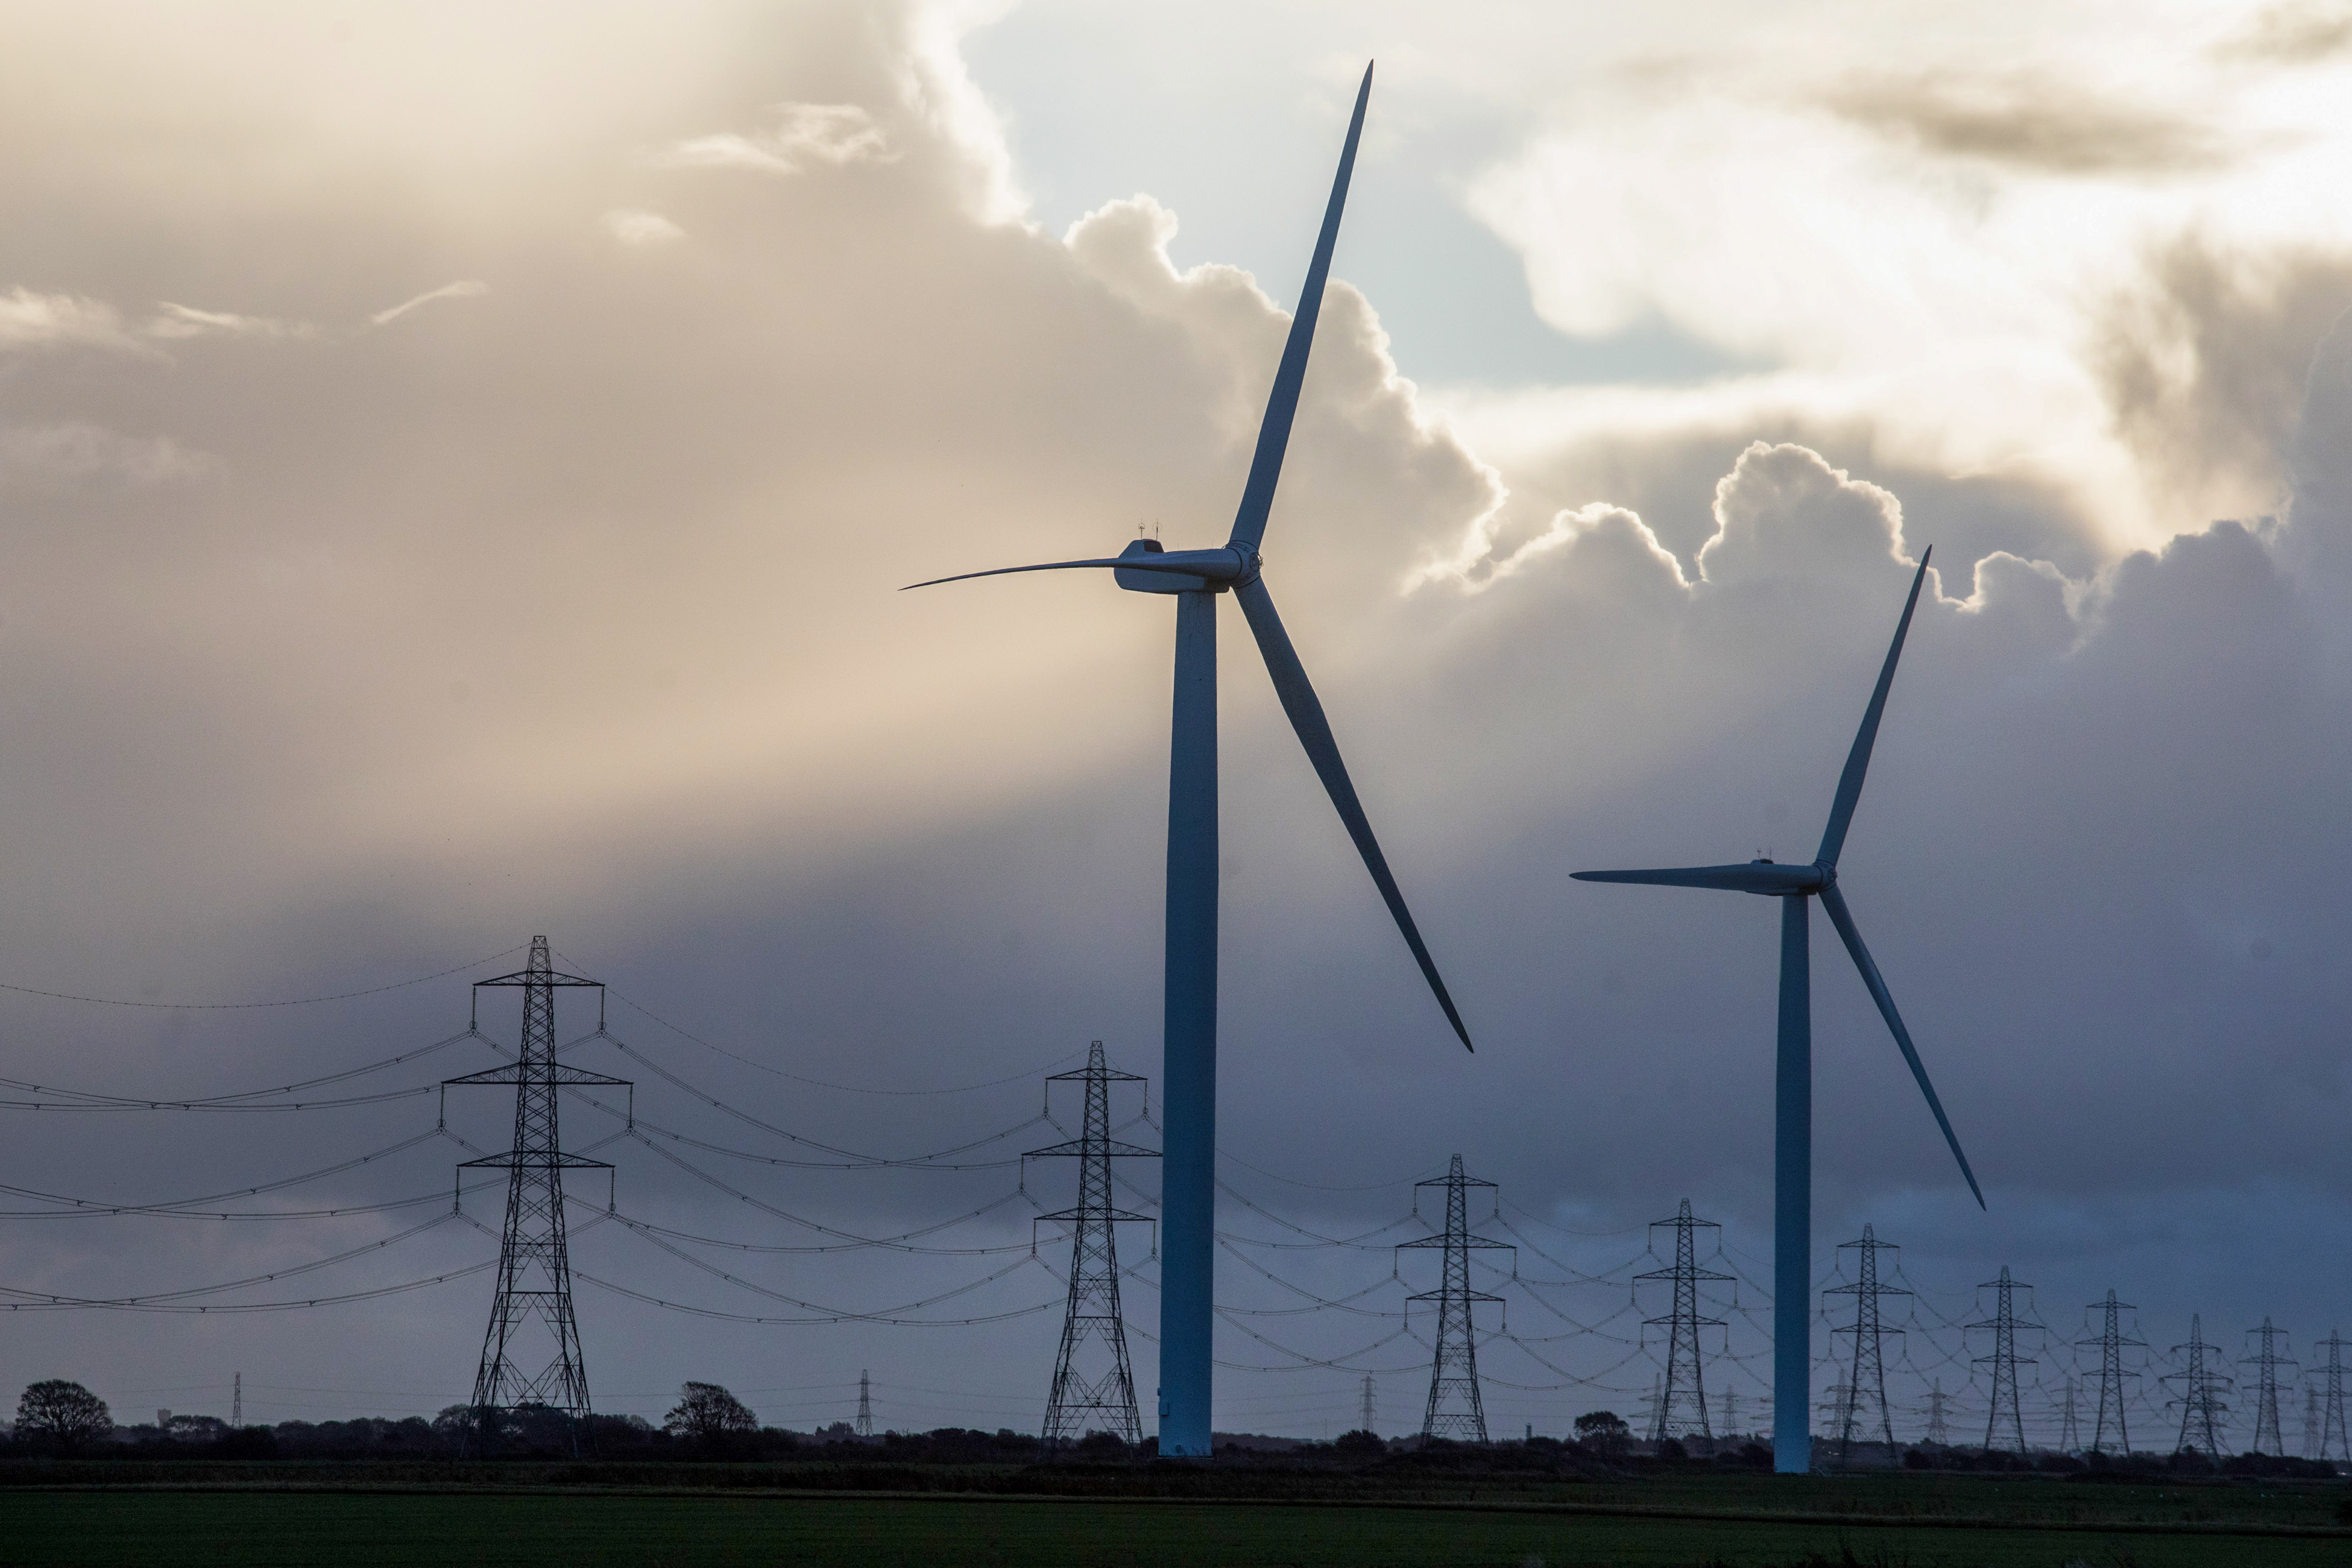 Onshore wind turbines and electricity transmission pylons at the Little Cheyne Court Wind Farm near Camber, U.K., on Monday, Oct. 26, 2020.